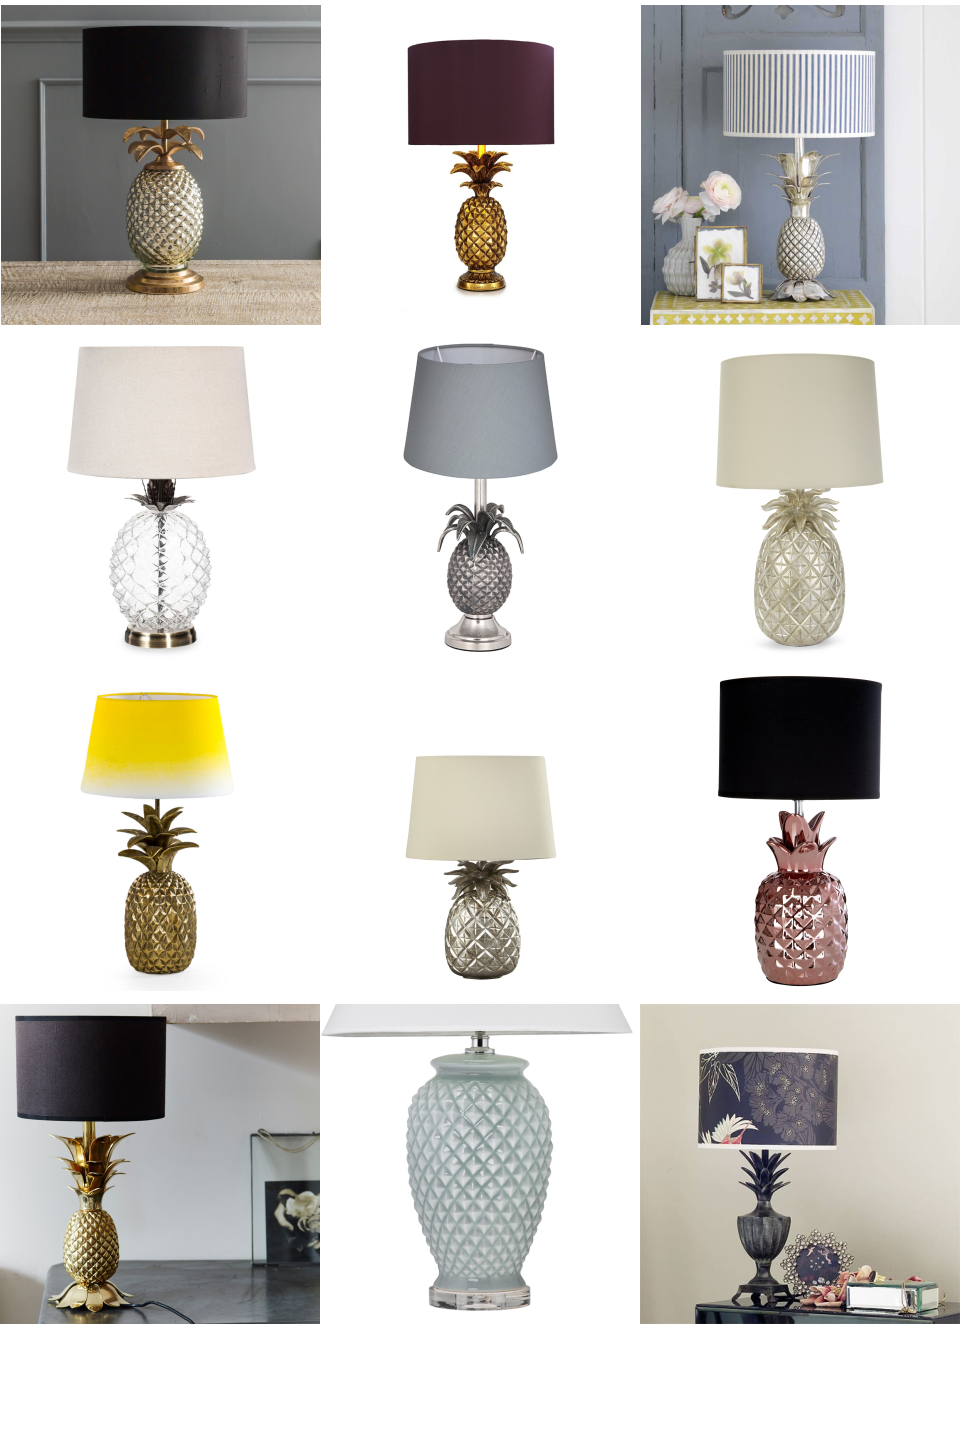 Pineapple Lamps Inspiration Board Light up your